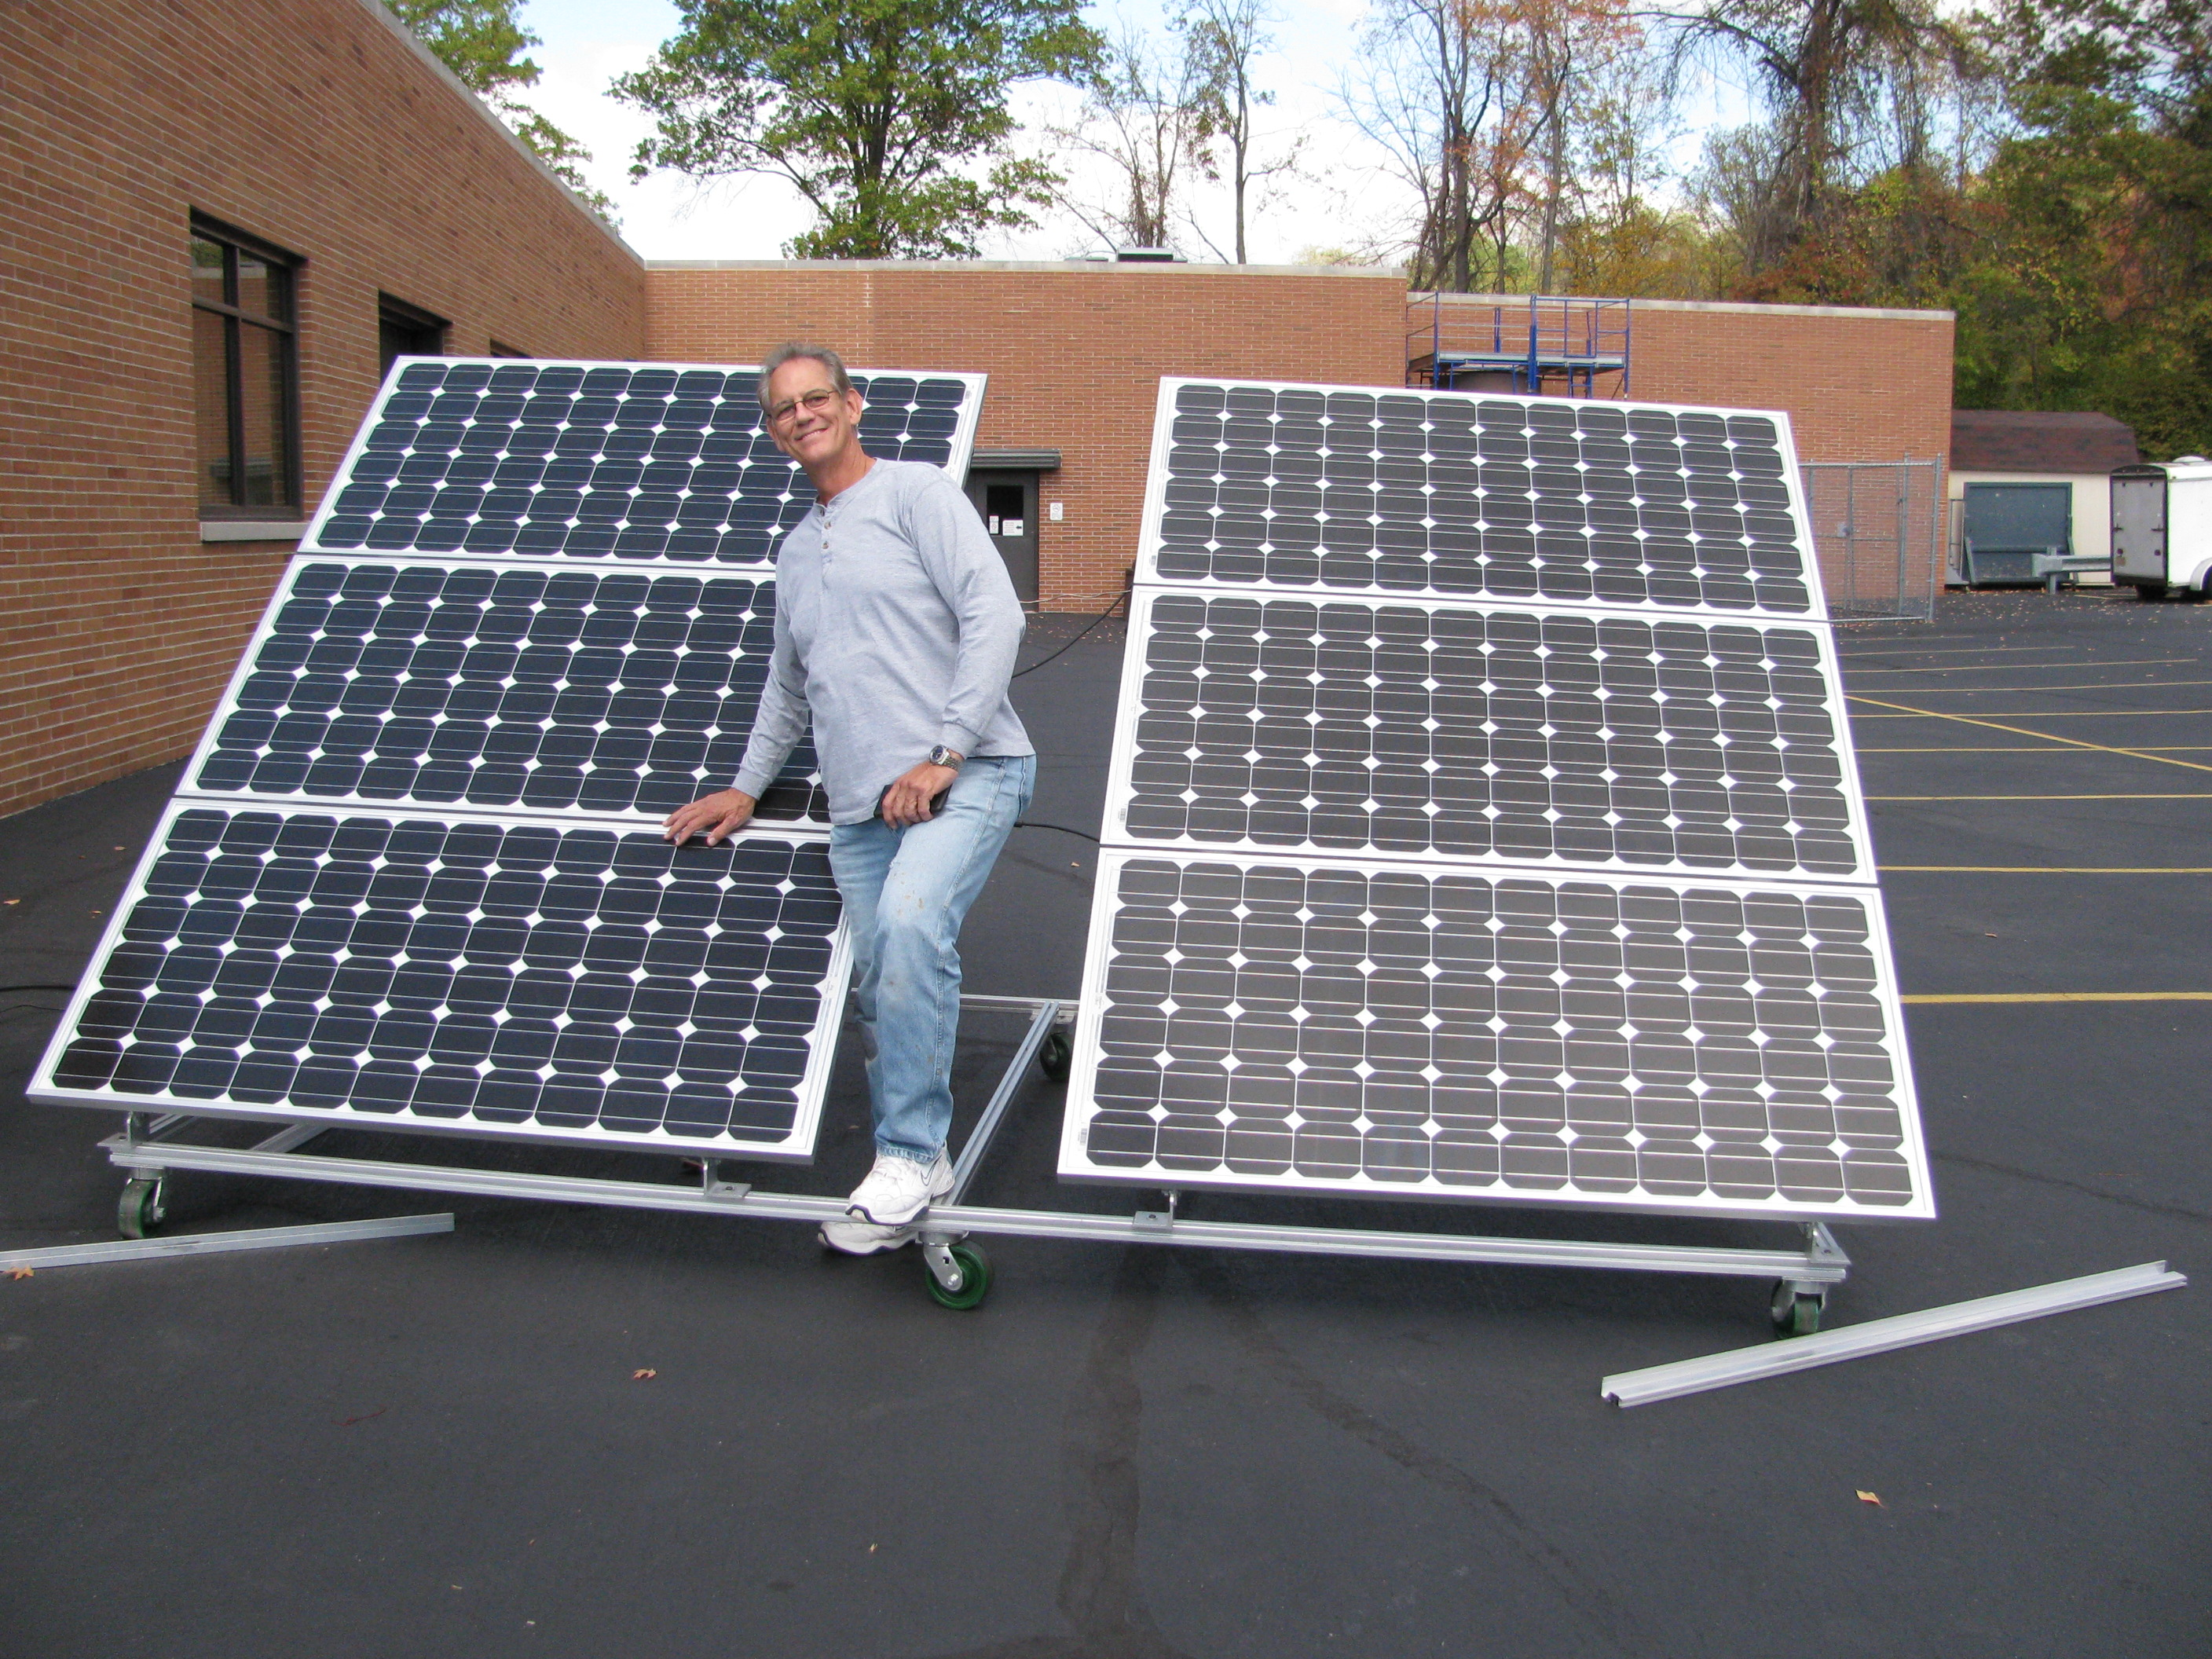 Answers To The Most Asked Residential Solar Diy Questions About Front Panel Wiring Homebuilt Systems Install At Cinci State College With Joe Utasi In Charge